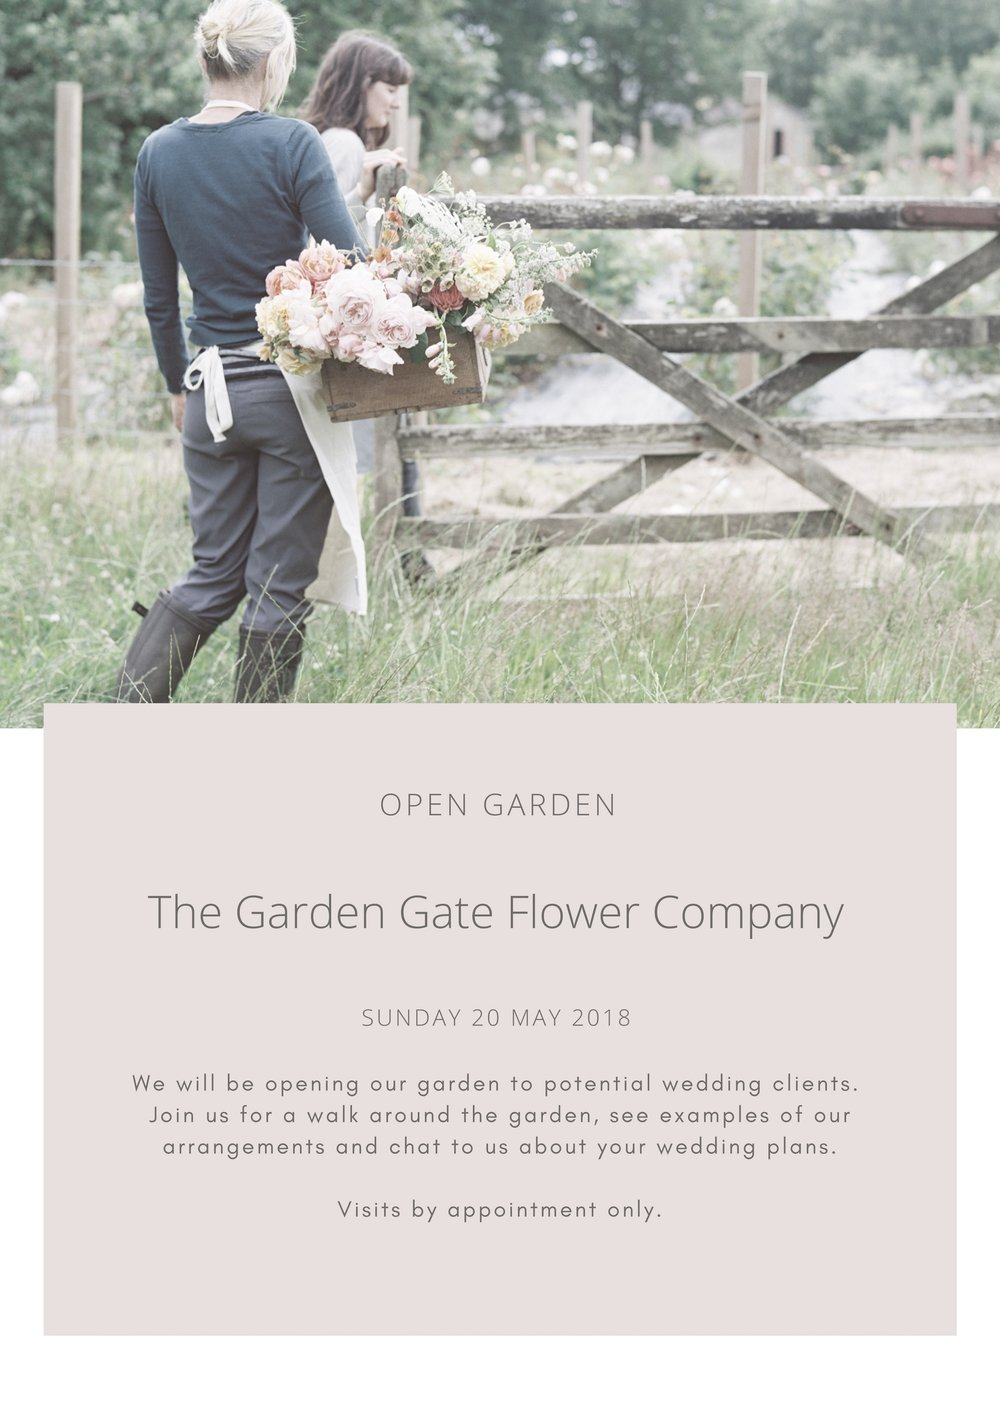 We Are Delighted To Be Offering Potential Brides An Opportunity To Meet Us And Our Garden If You Would Like To Arrange An Appointment Please Fill In The